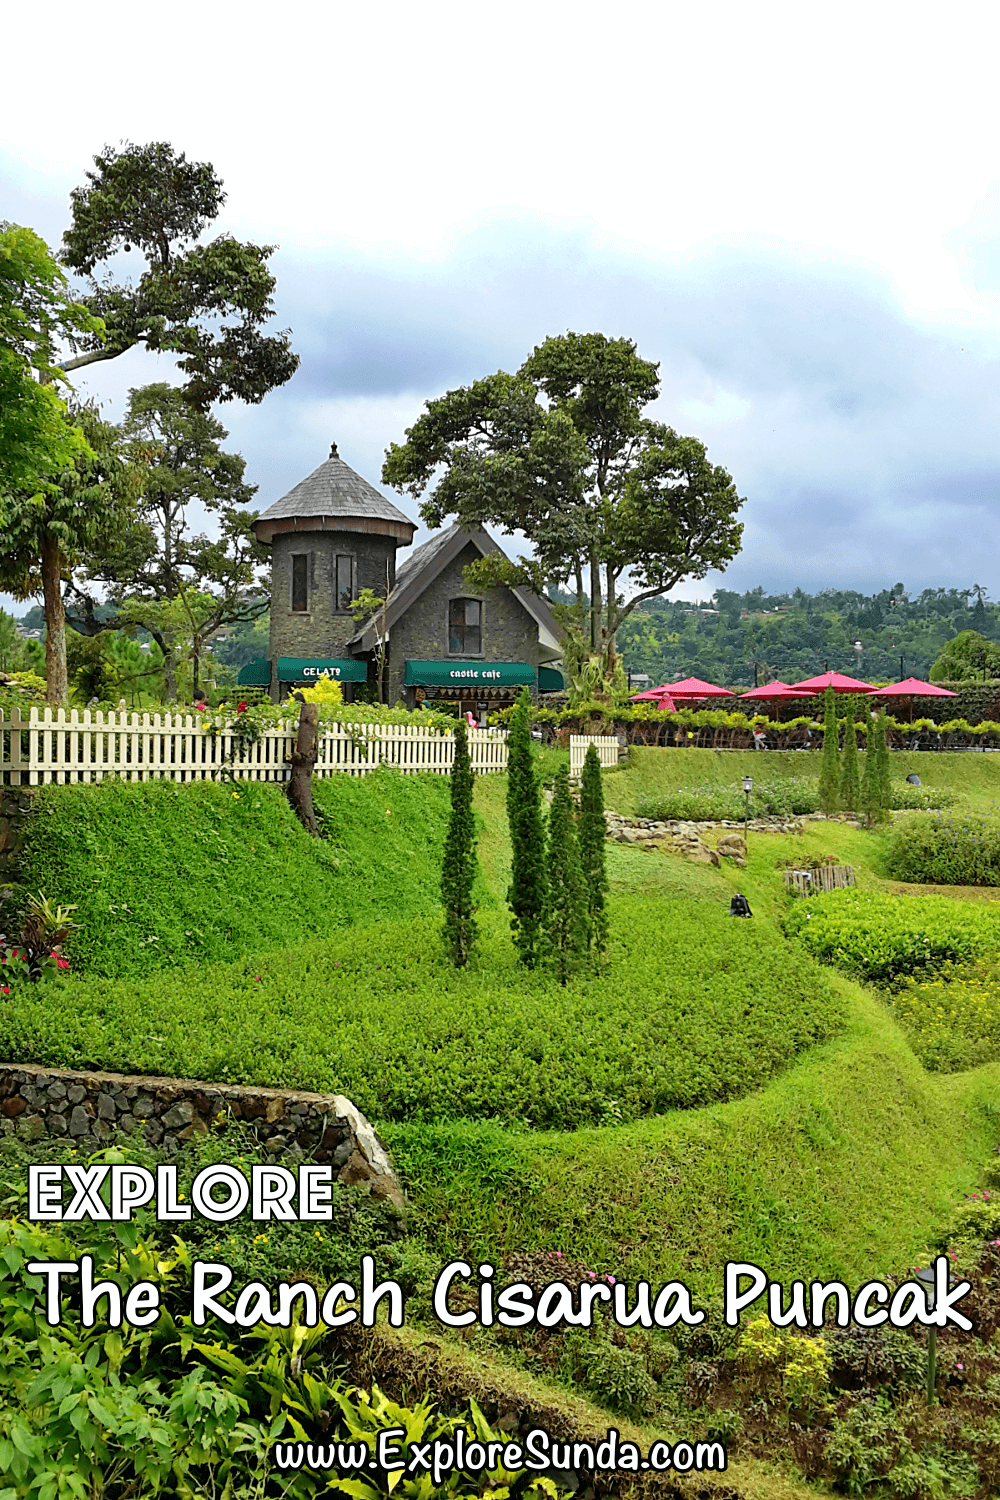 Explore The Ranch Cisarua in Puncak Bogor | Ride a horse like Robin Hood, shoot arrows to earn a prize, feed the rabbits, herd sheep, and enjoy the gorgeous view of The Ranch Cisarua | #ExploreSunda